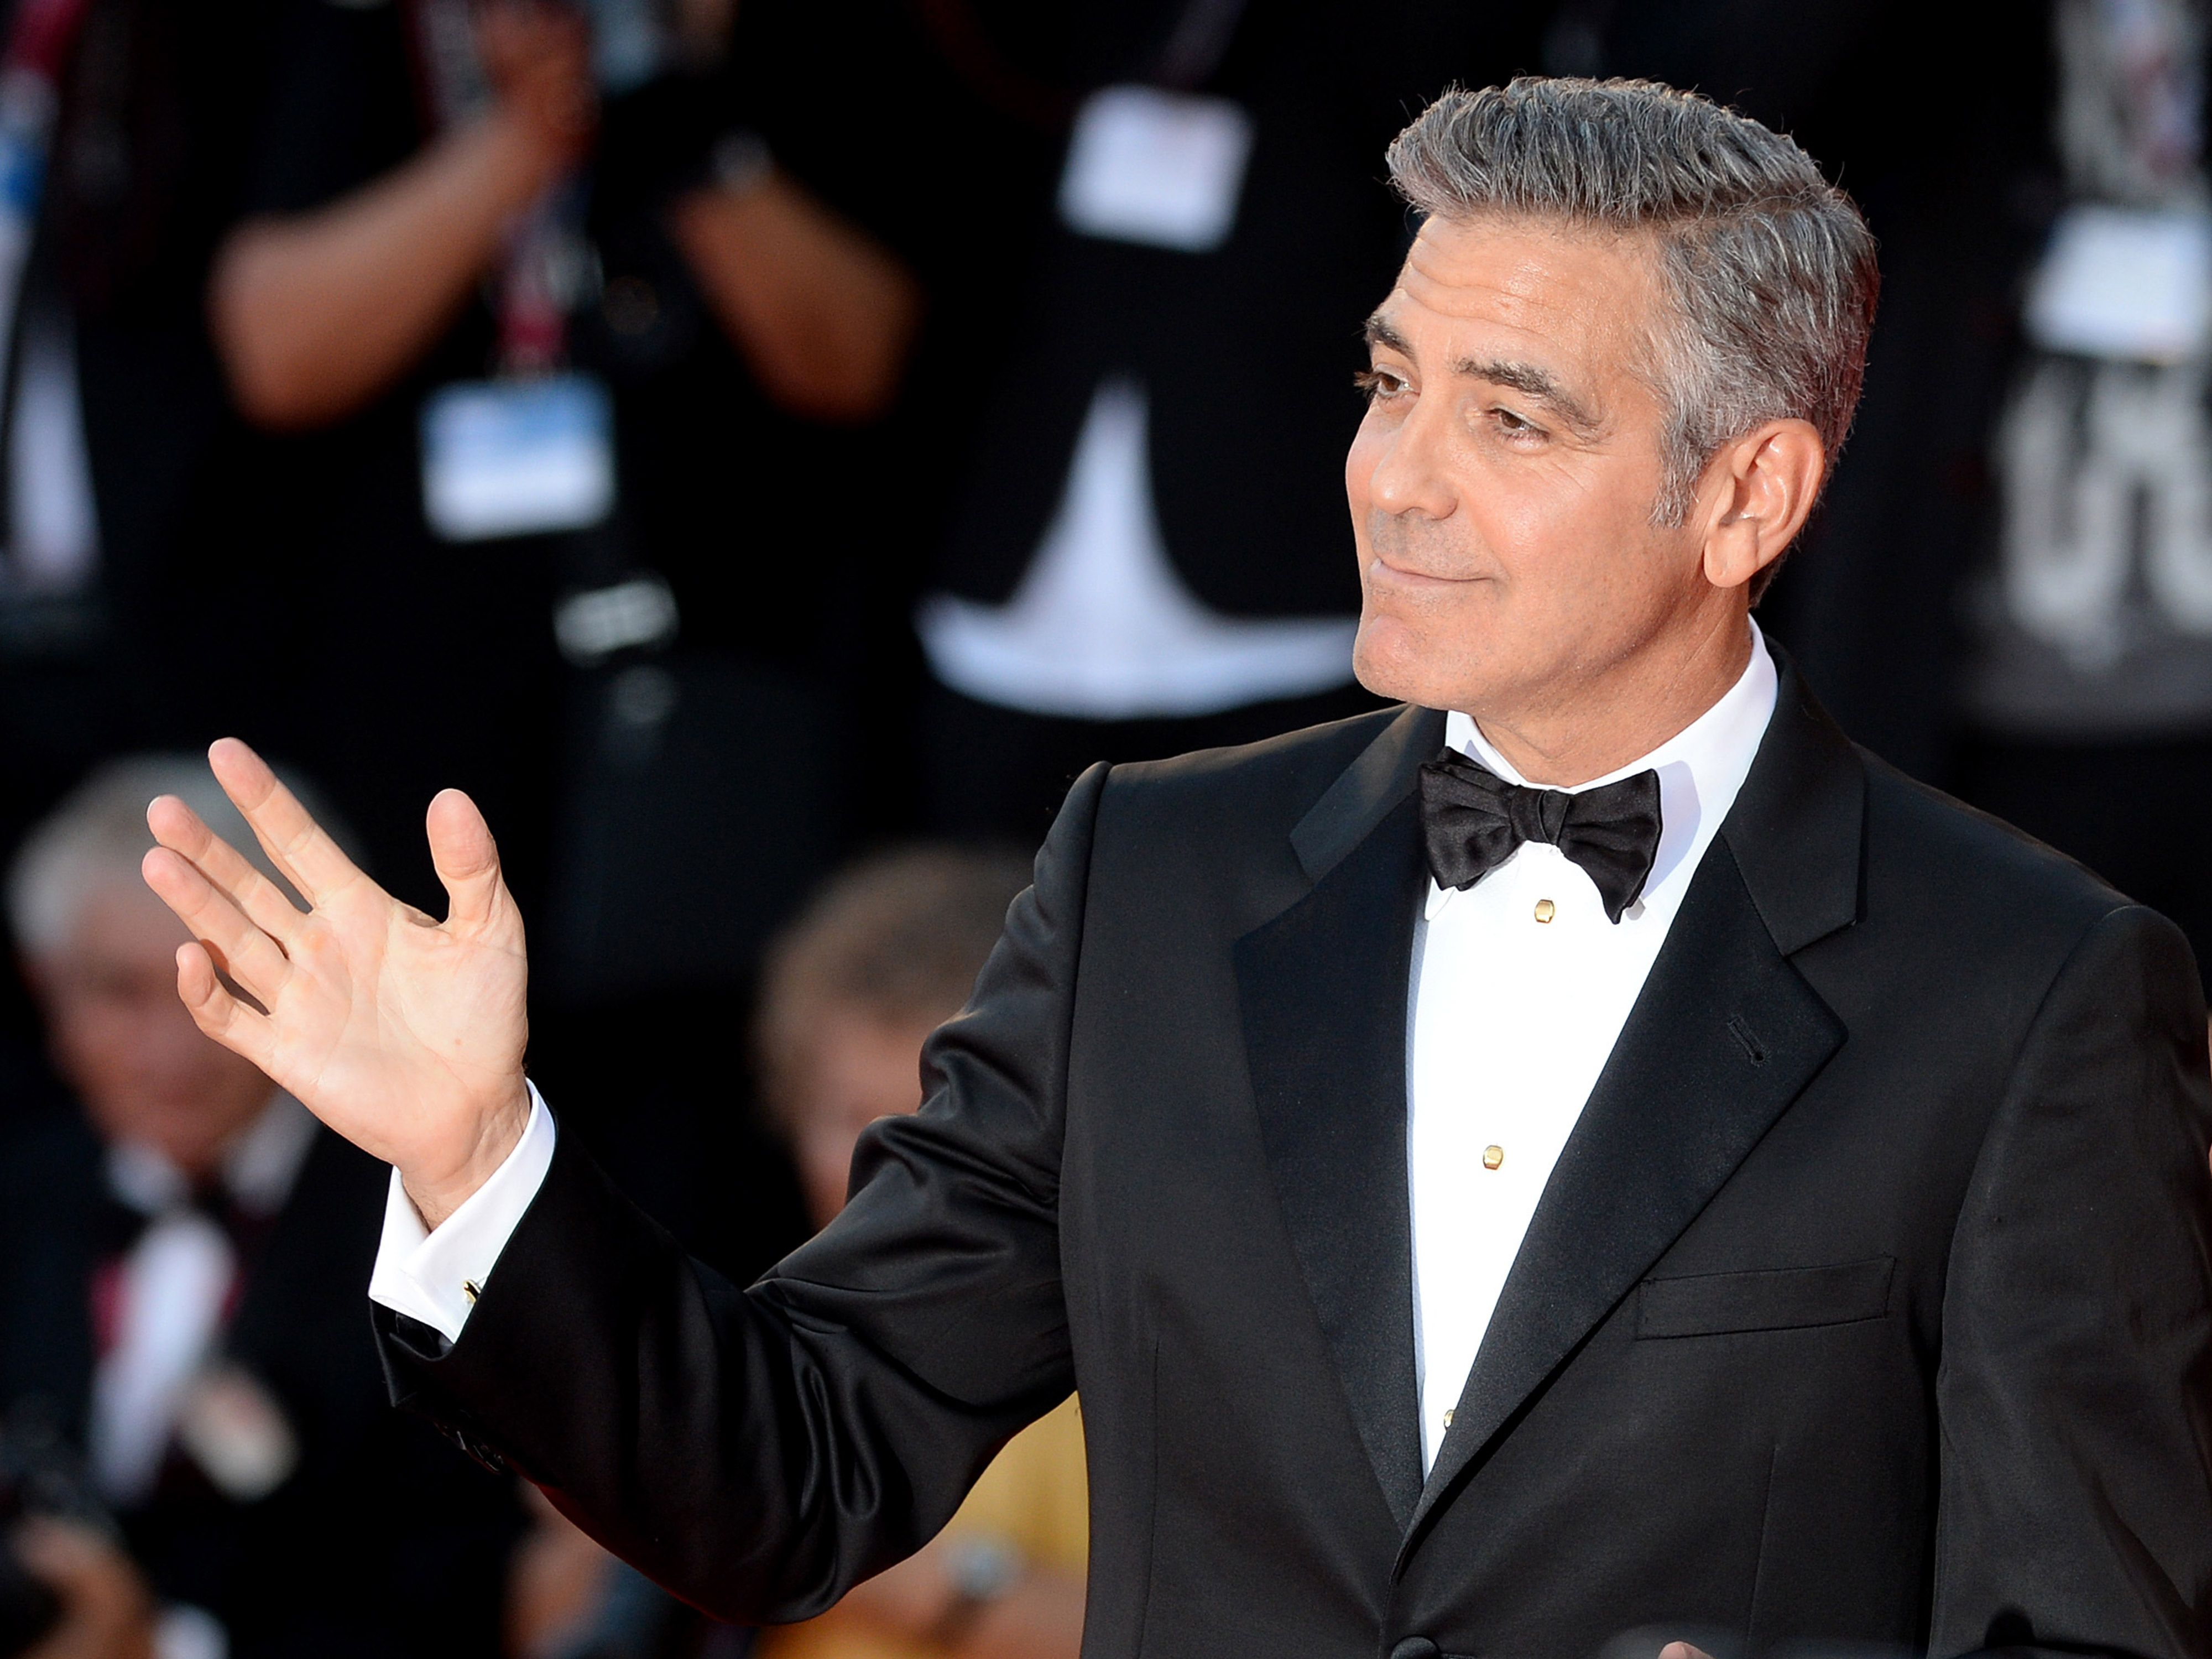 George Clooney nearly starred in The Notebook over Ryan Gosling